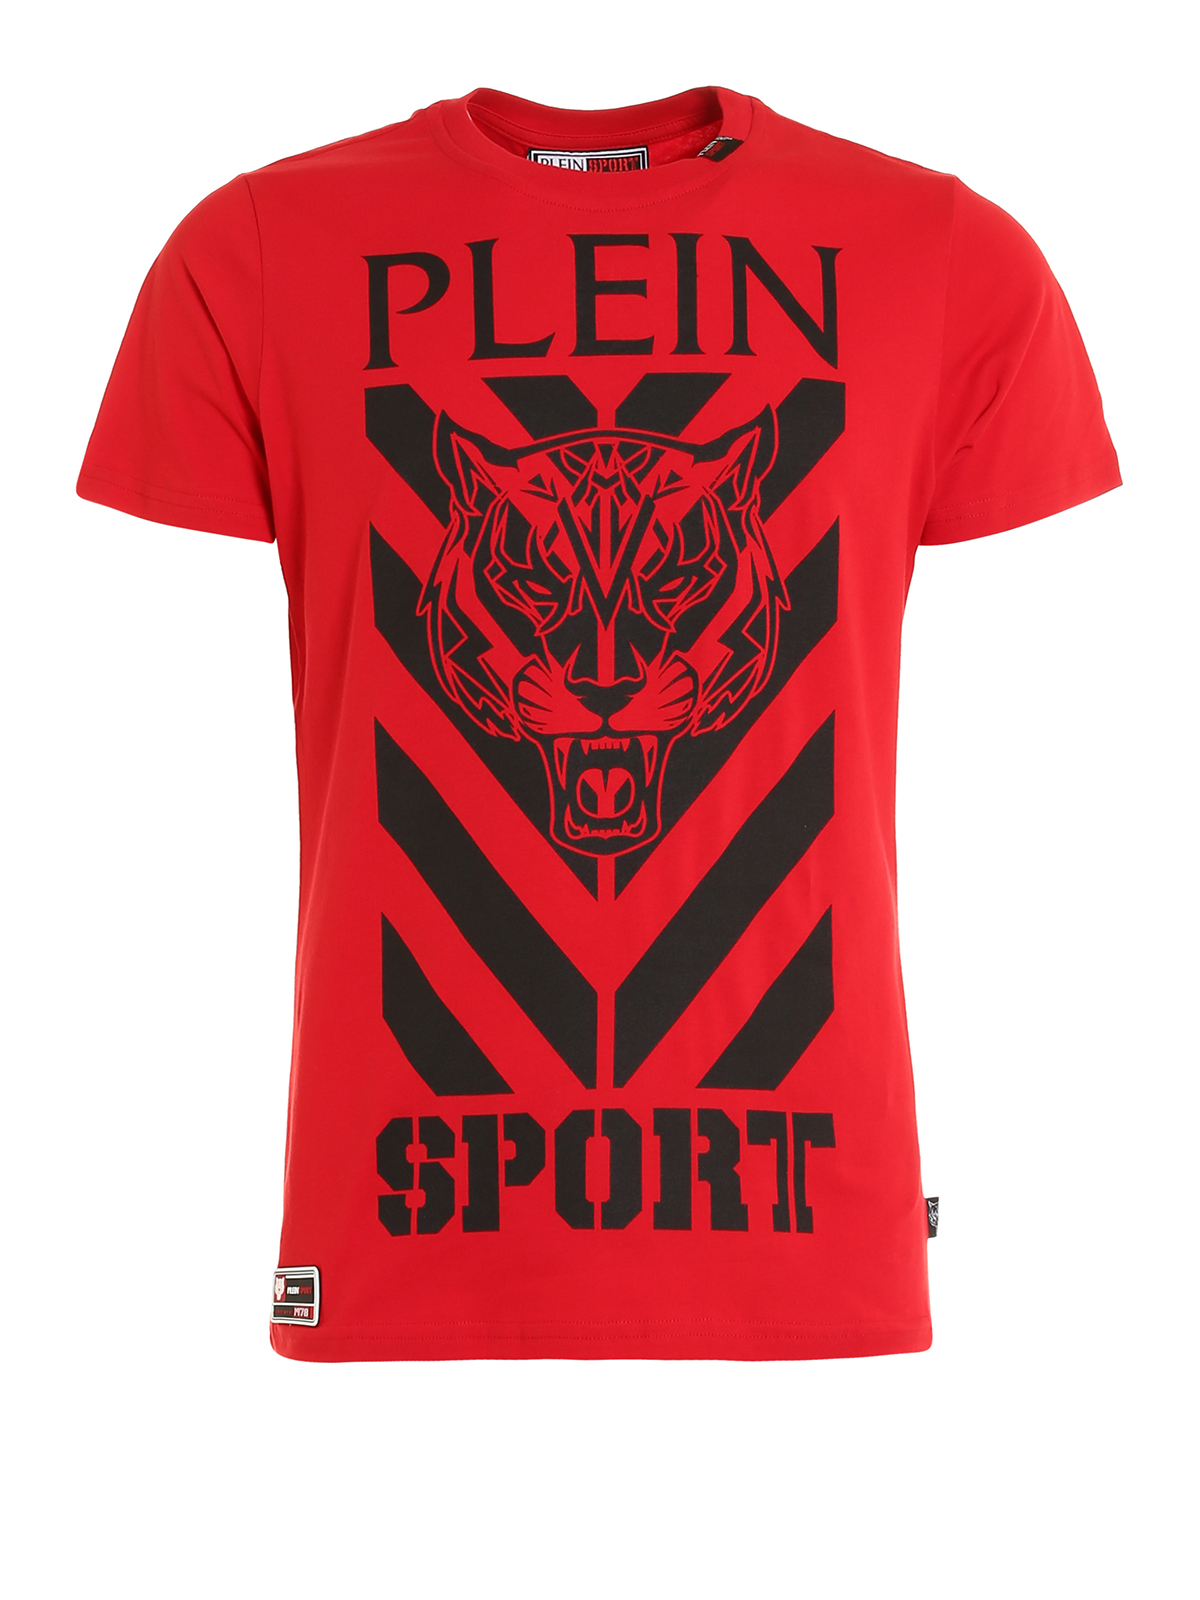 shooter cotton t shirt by philipp plein t shirts ikrix. Black Bedroom Furniture Sets. Home Design Ideas